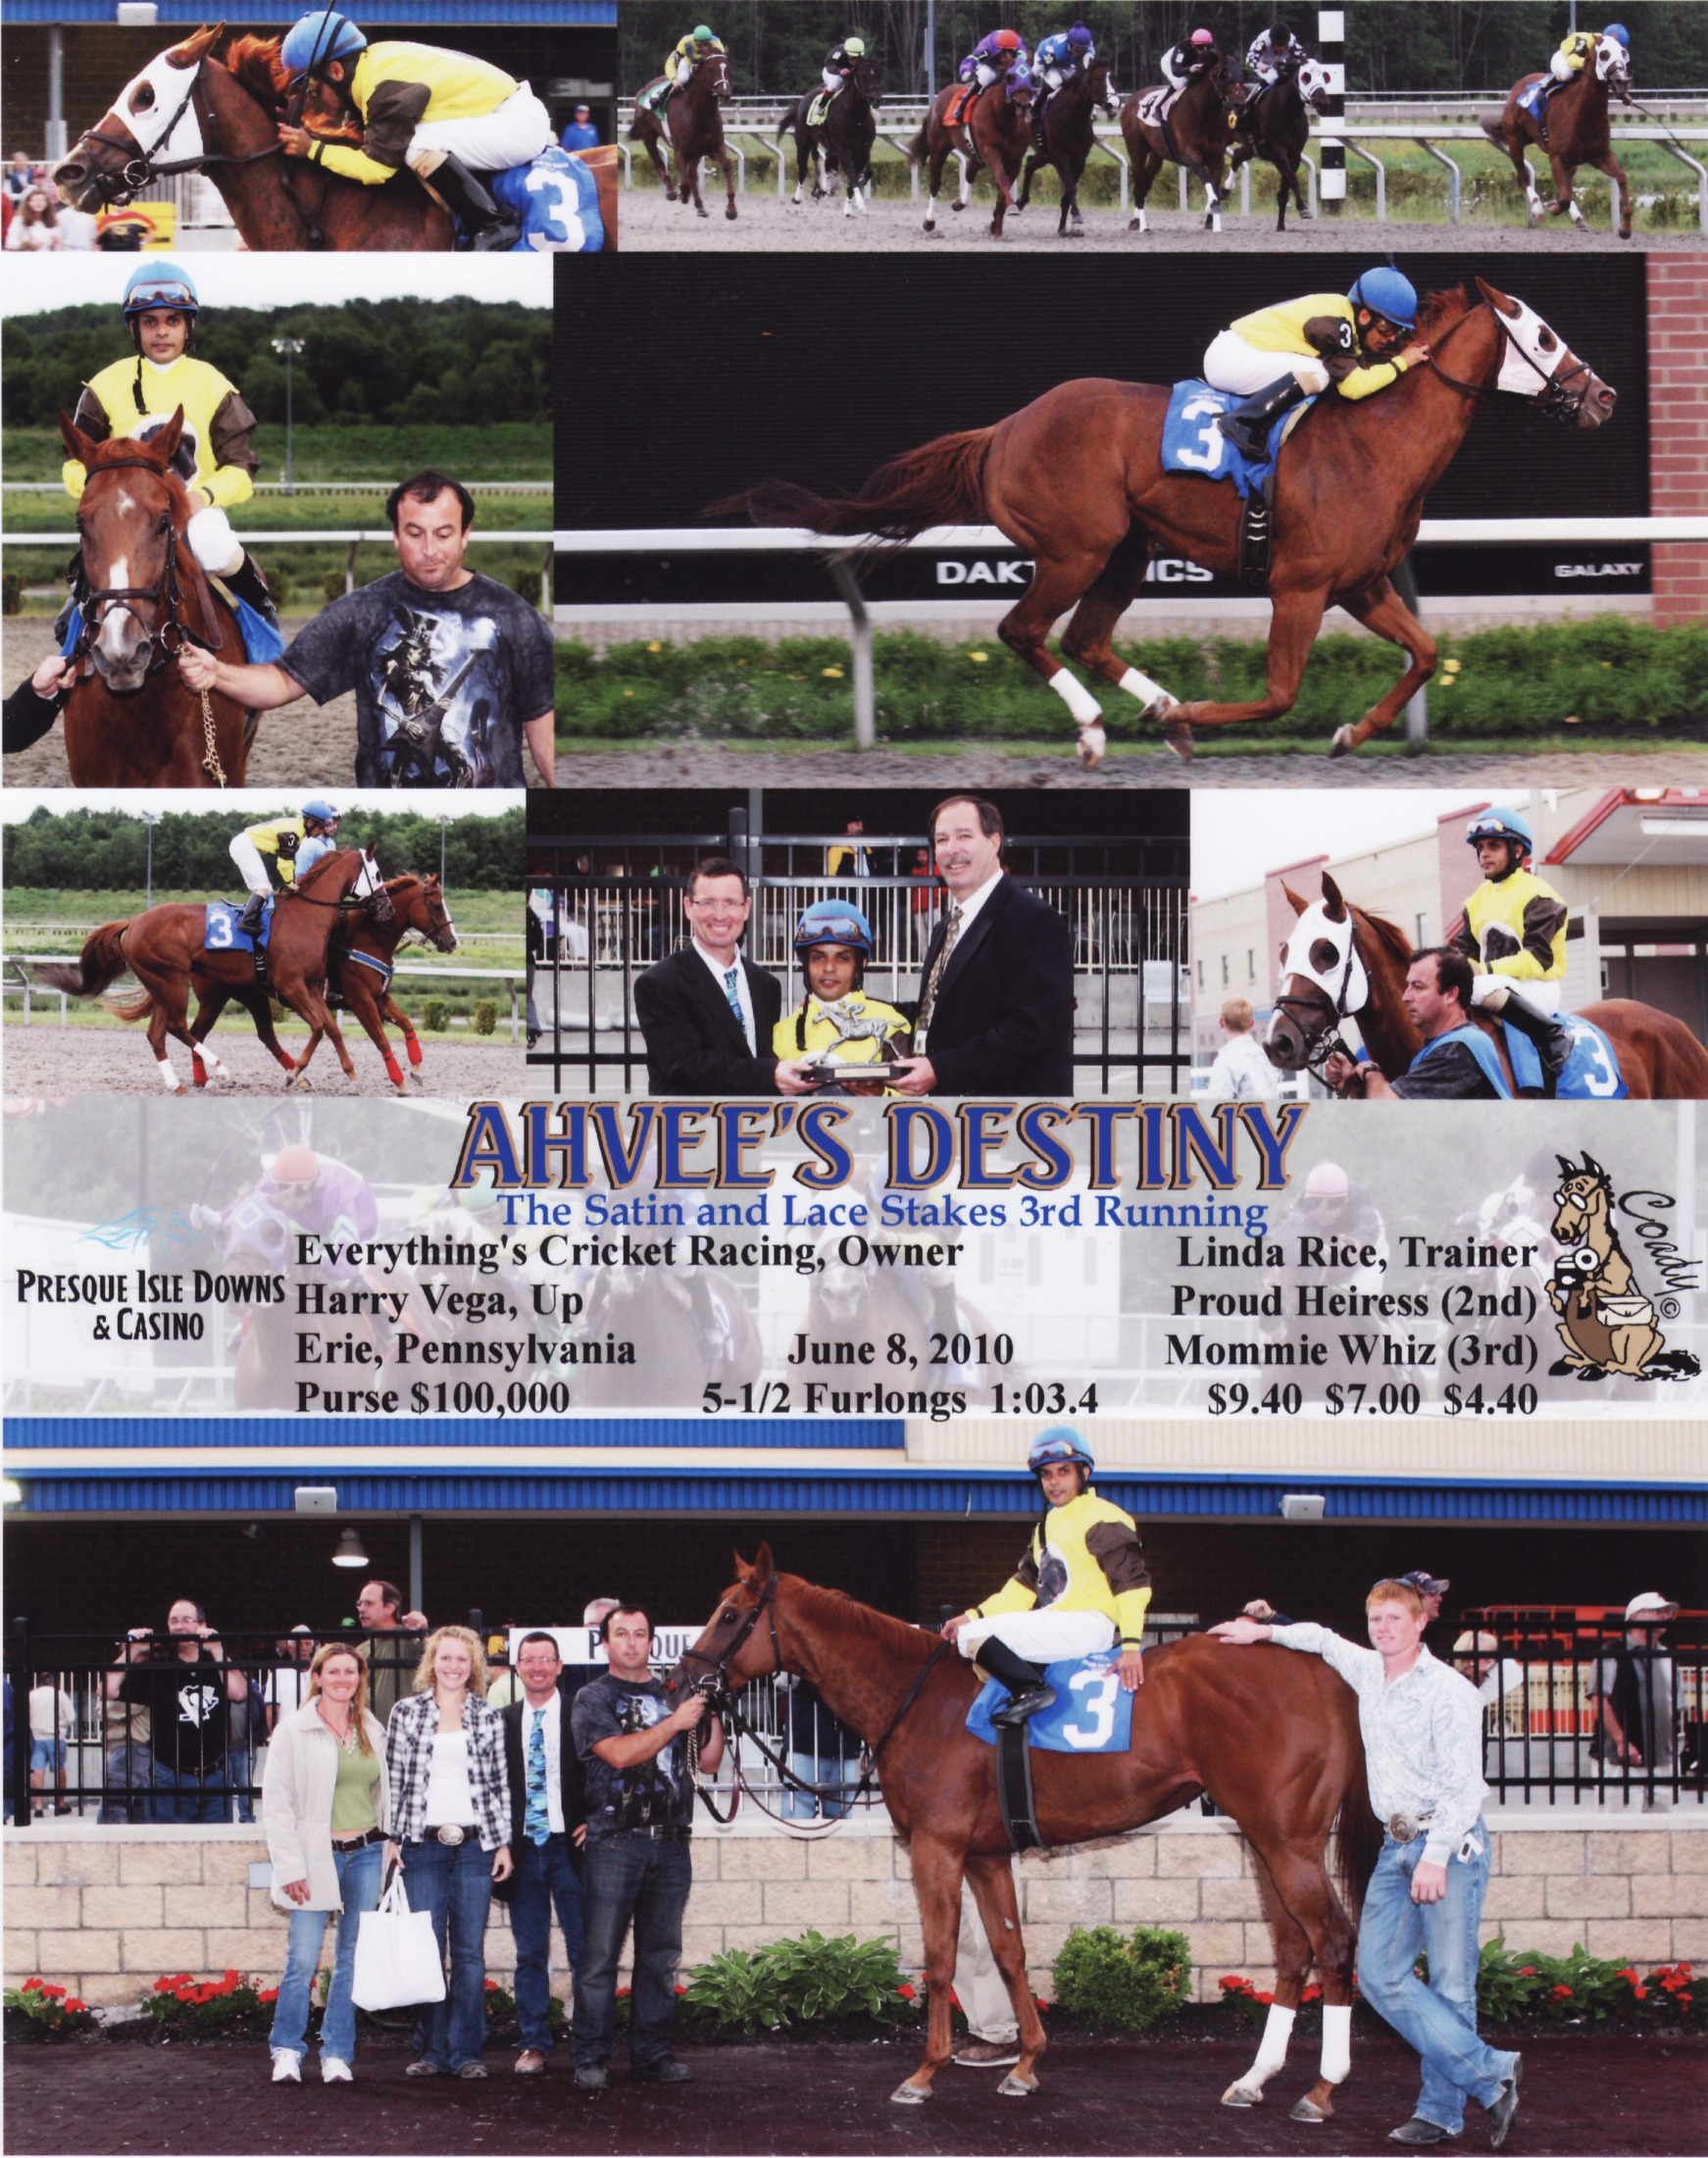 On September 2, 2007, Ahvee's Destiny won her third race (second in a row) on Saratoga's grass course by three lengths—just a fraction off the track record. Since the Freedberg's were in Scotland, they saw the result on TV in the lobby of The Gleneagles Hotel. Trainer Linda Rice, her staff, and jockey, Alan Garcia are in the winner's circle.